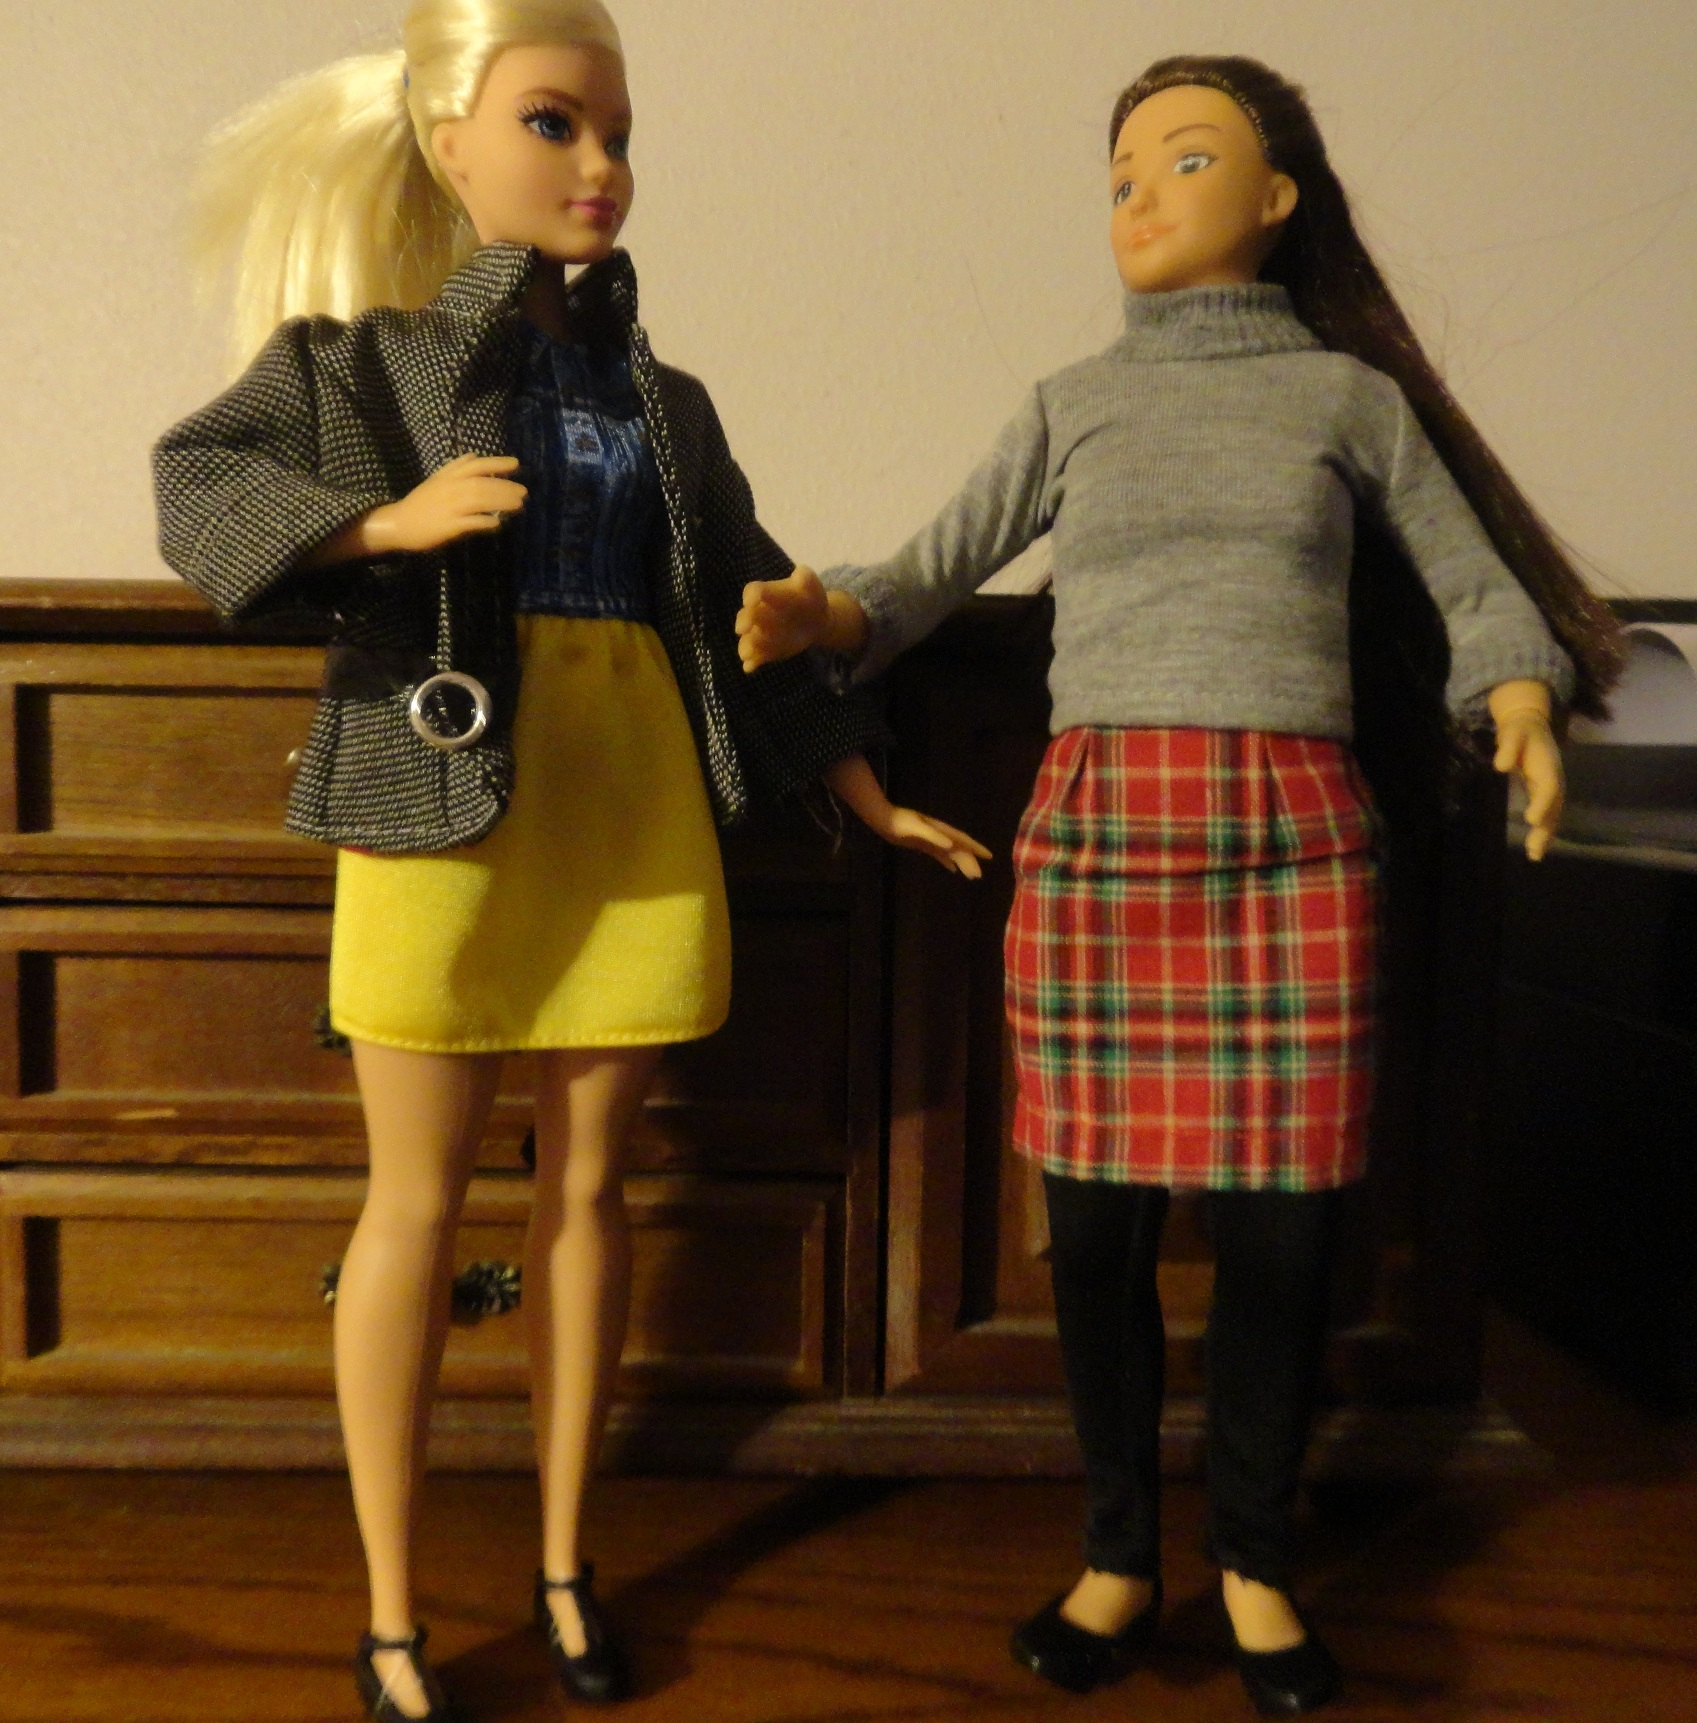 Curvy can borrow the Lammily doll's clothes, but the same can't be said for the Lammily doll. But unluckily for my pocket book, there are a lot of outfits to fit both dolls now.